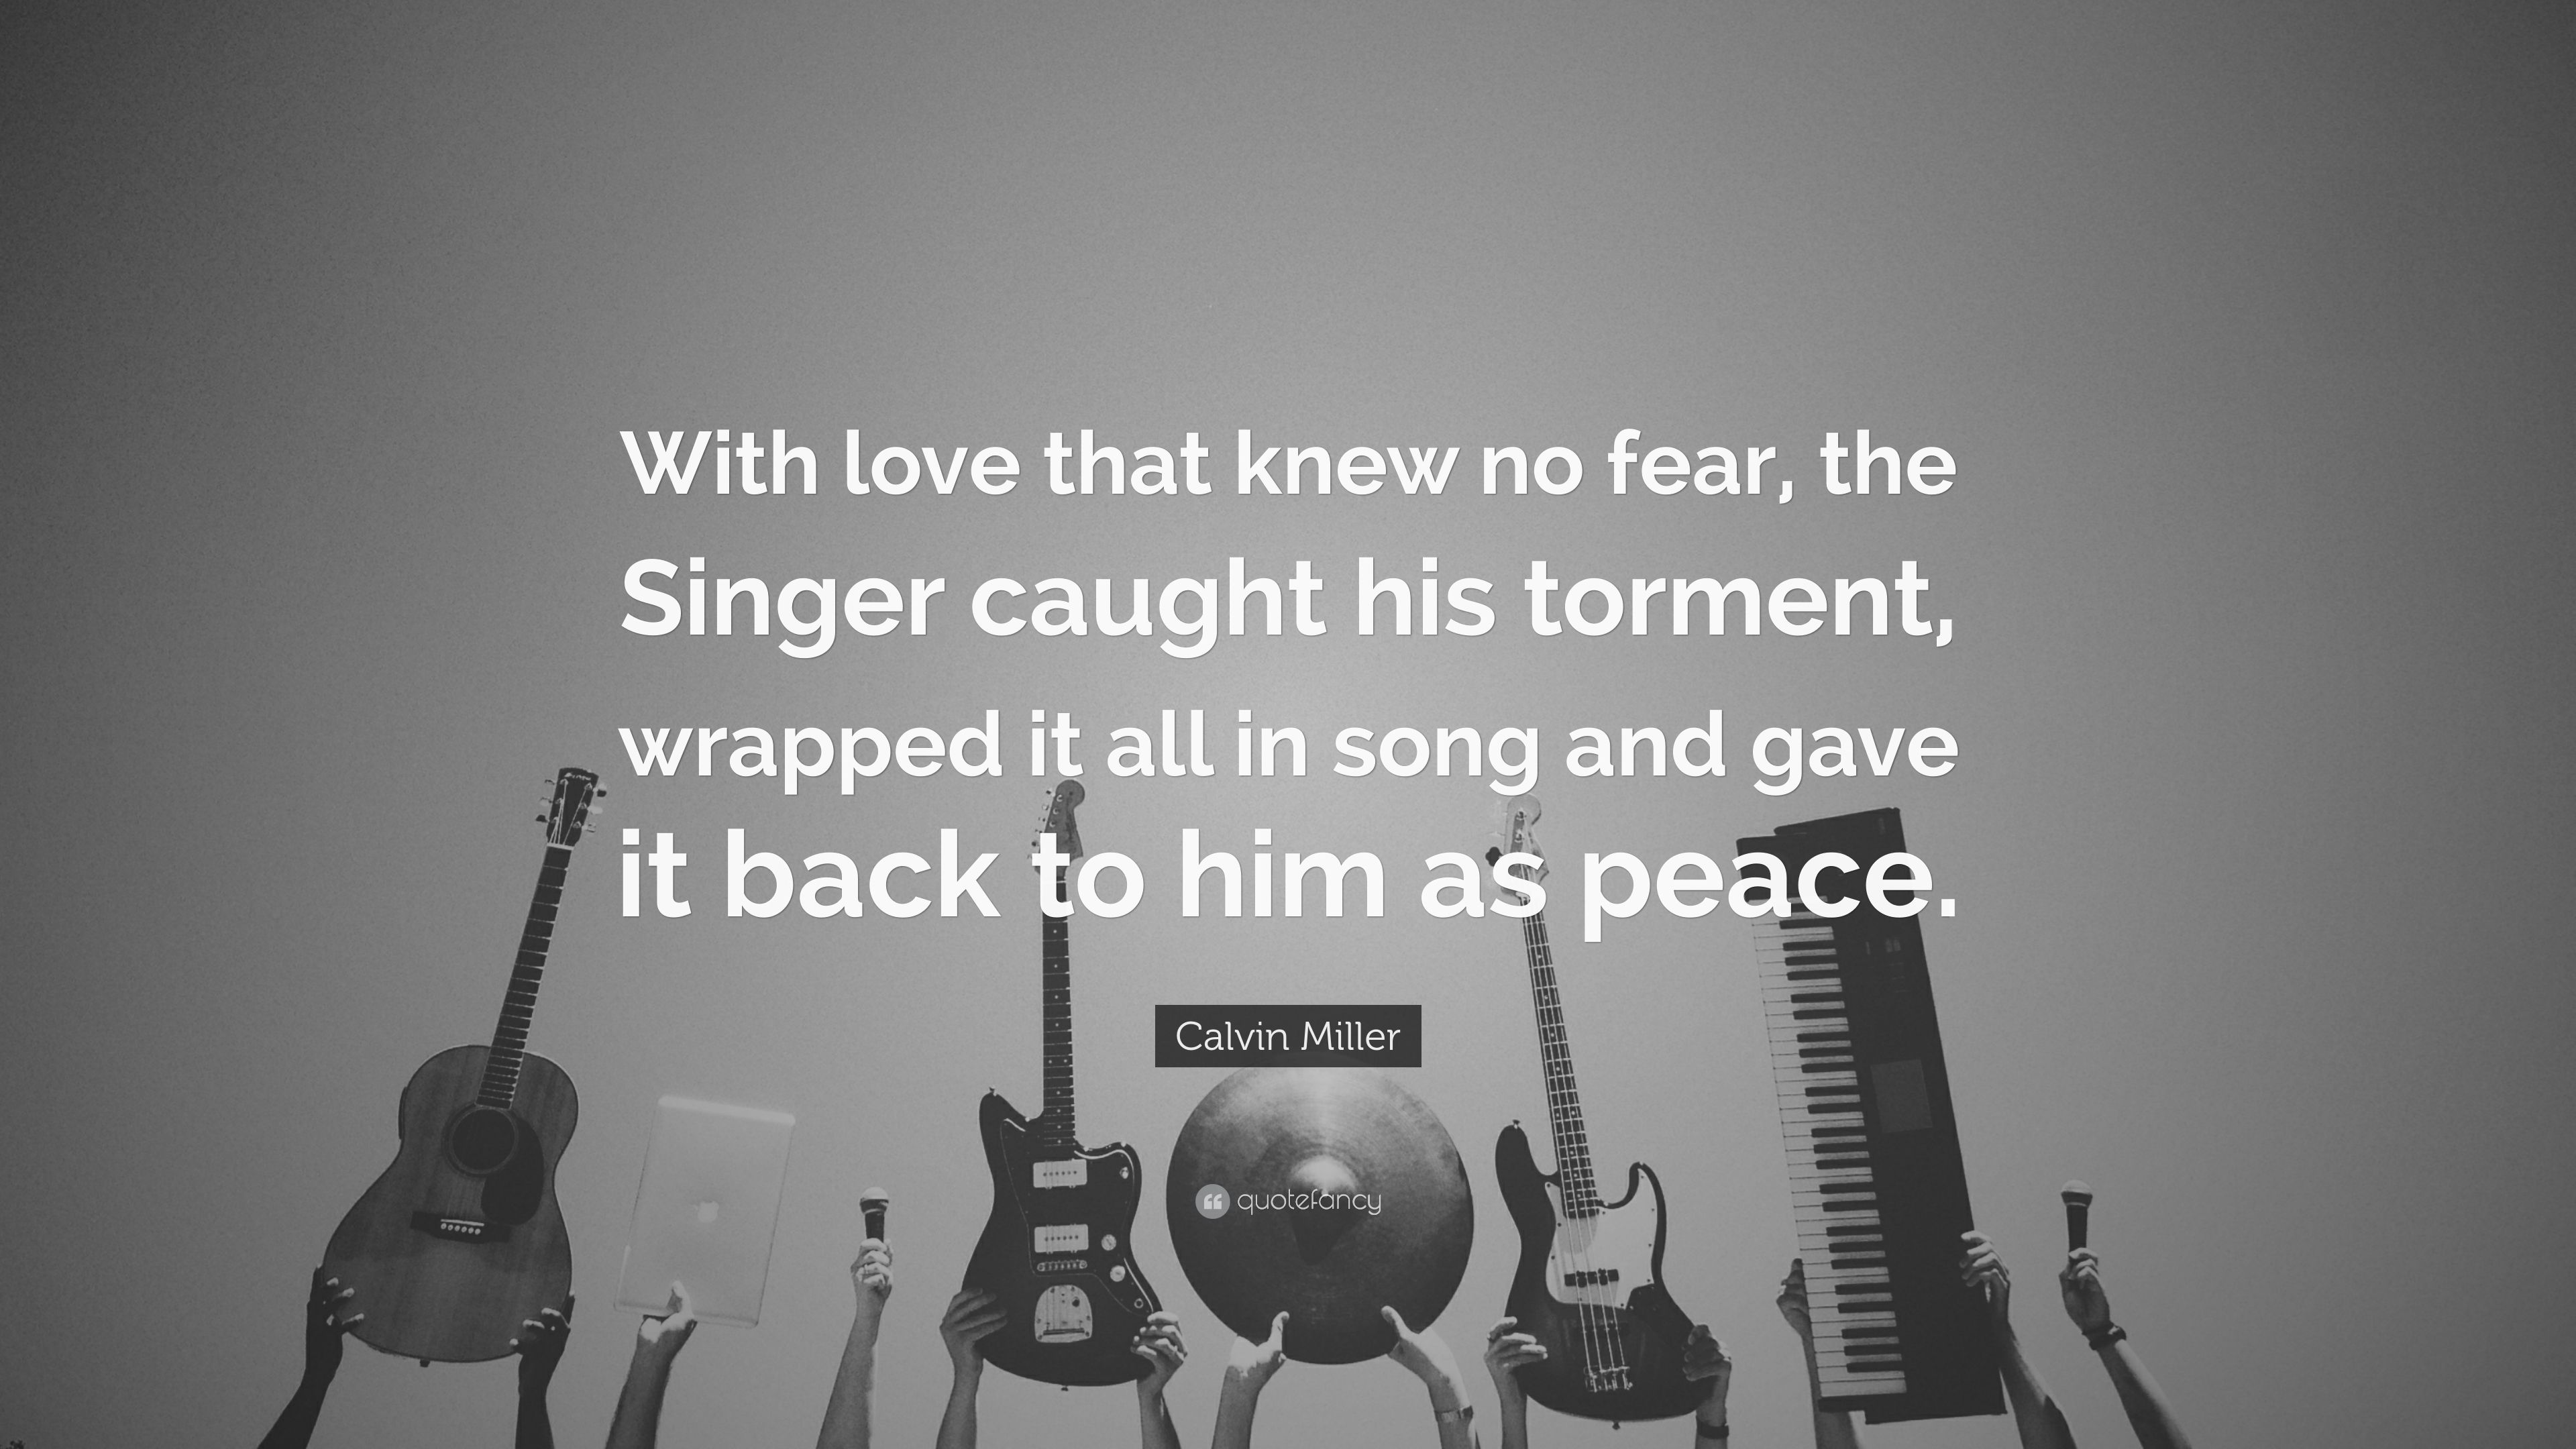 Calvin Miller Quote With Love That Knew No Fear The Singer Caught His Torment Wrapped It All In Song And Gave It Back To Him As Peace 7 Wallpapers Quotefancy